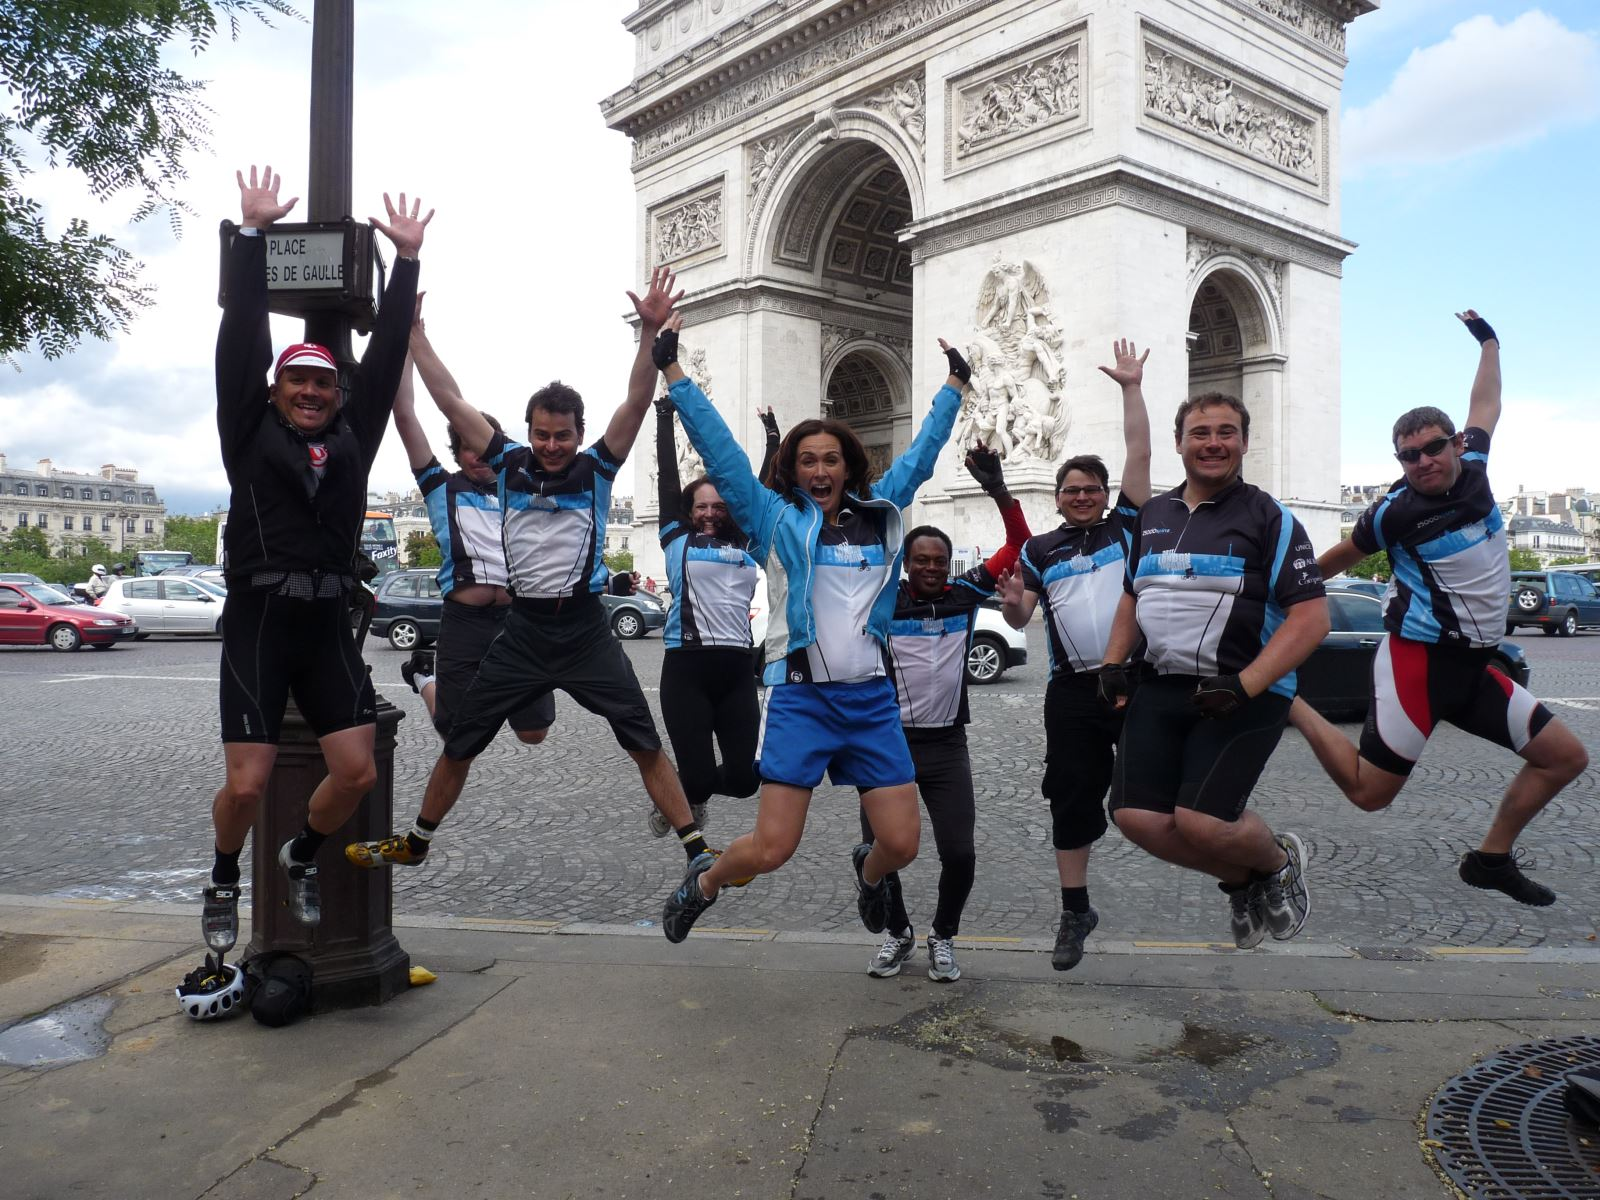 London to Paris 2013